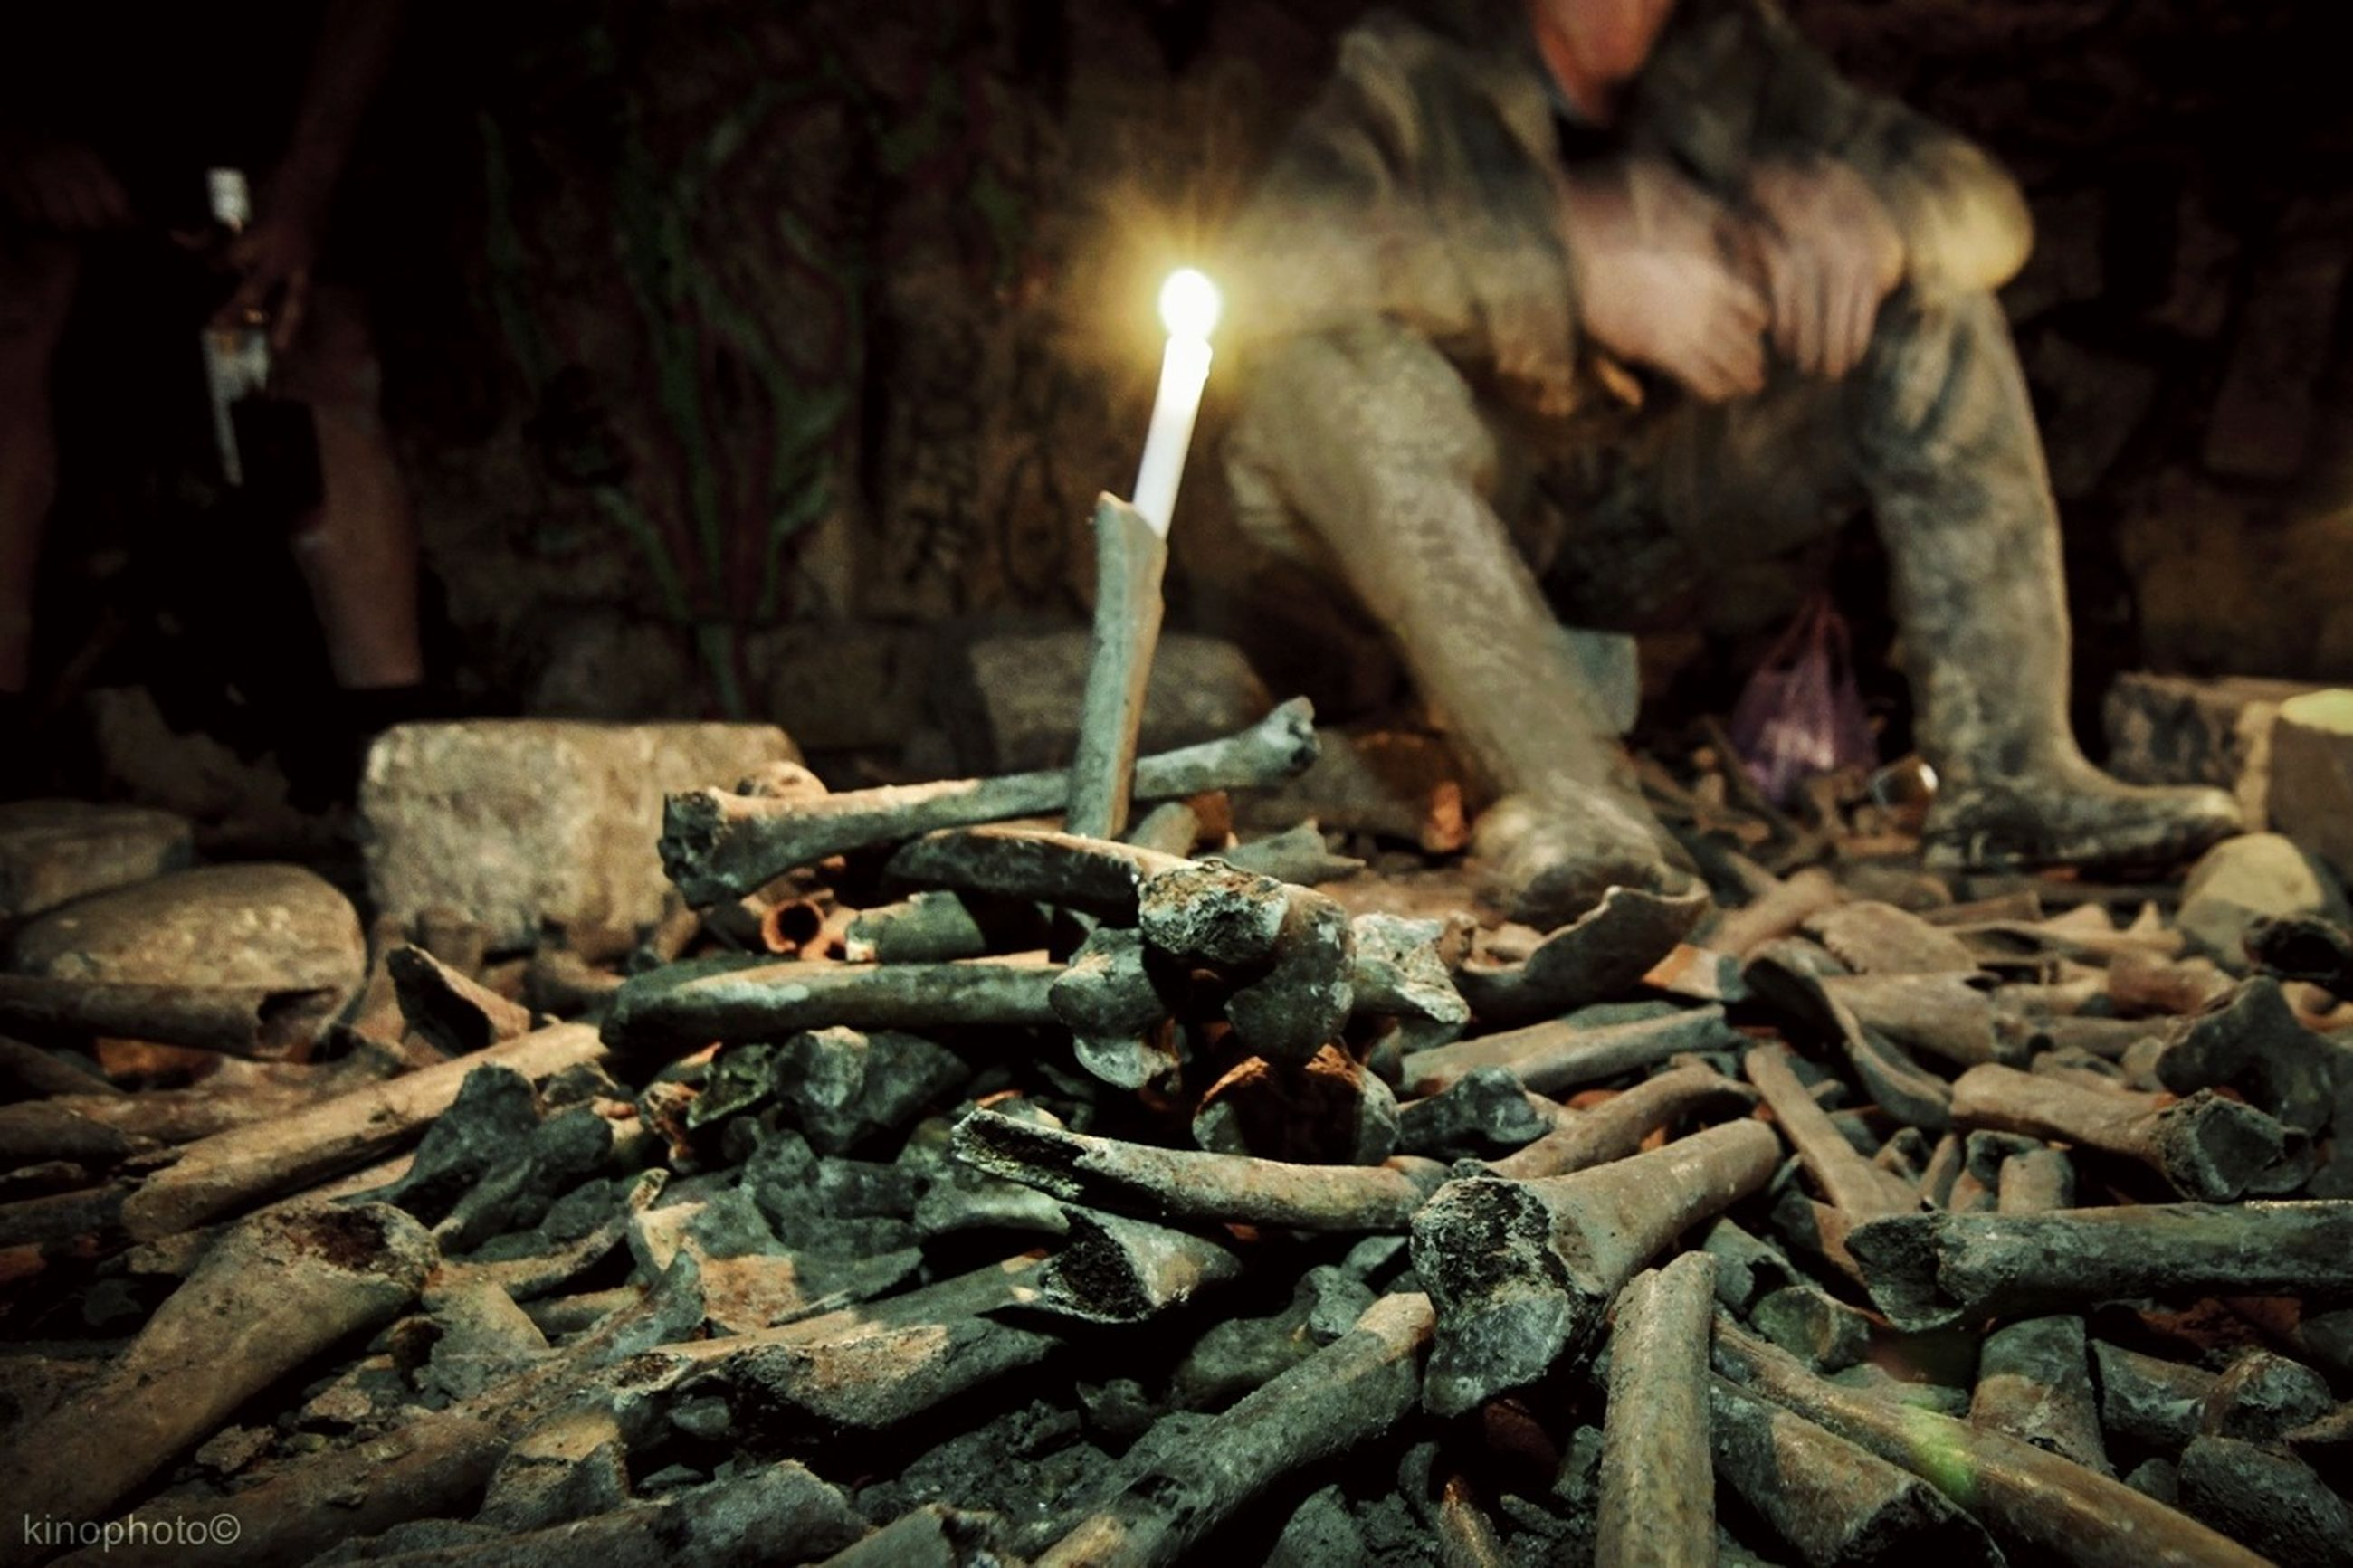 burning, flame, heat - temperature, close-up, firewood, night, fire - natural phenomenon, wood - material, log, no people, animal themes, outdoors, death, focus on foreground, selective focus, the end, metal, nature